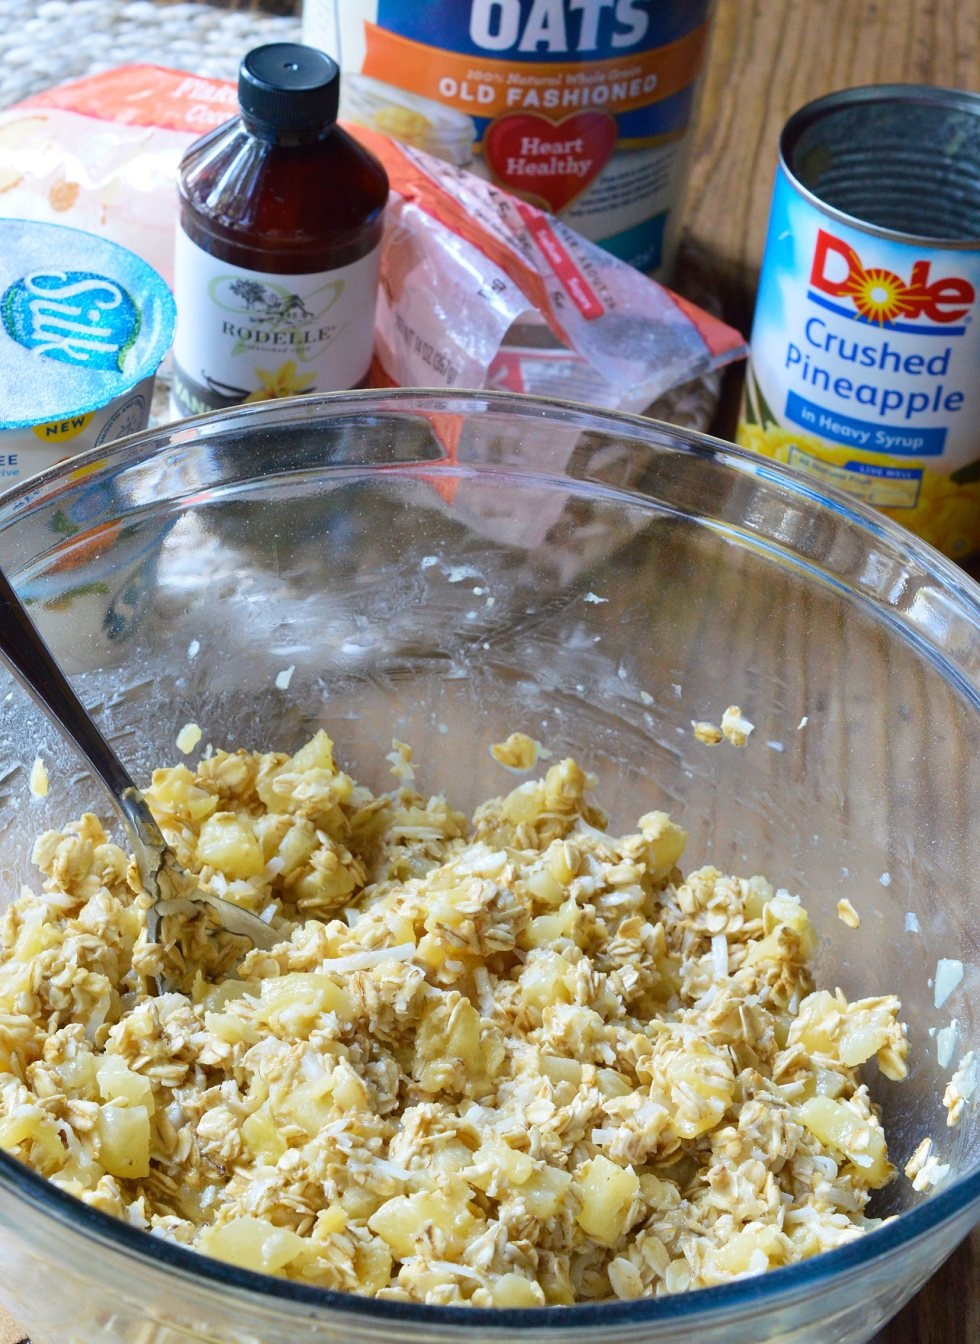 If you want a sweet and satisfying breakfast, this Pineapple Coconut Dairy Free Baked Oatmeal Recipe is perfect! This super simple recipe is a great way to liven up your morning oatmeal. Oatmeal, pineapple and coconut are baked and served like cake with a dollop of vanilla yogurt and a generous drizzle of maple syrup. This gluten free, vegetarian, dairy free breakfast will be a hit!